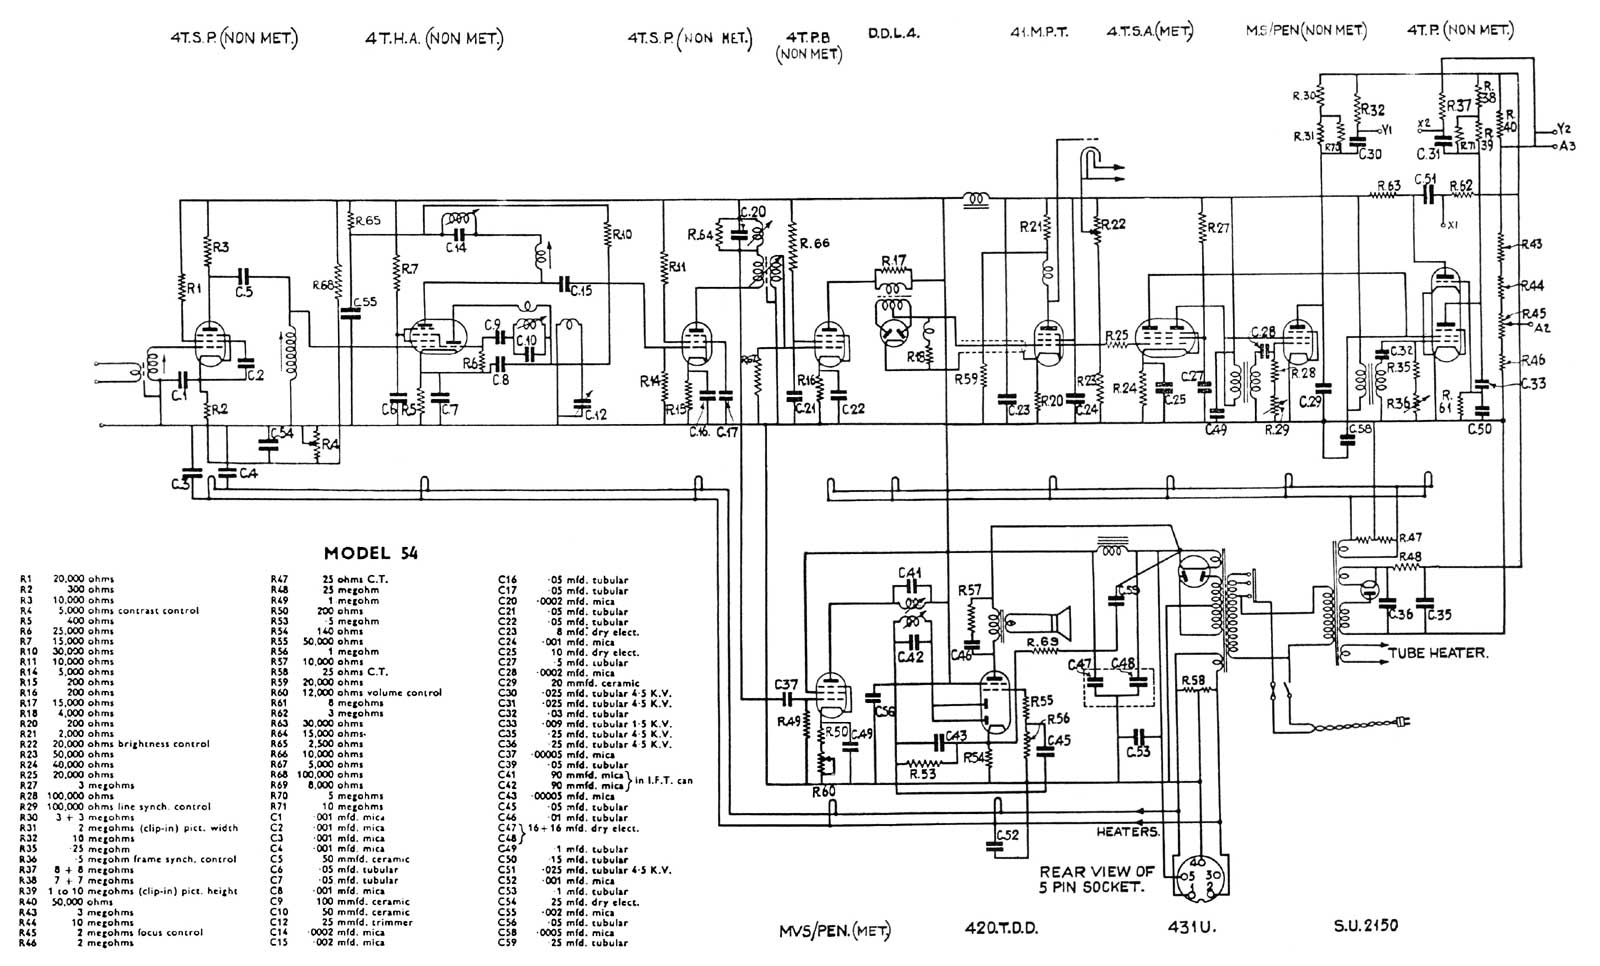 Ge Tv Schematic Simple Wiring Diagram Schema 1948 Refrigerator Starting Know About U2022 Stove